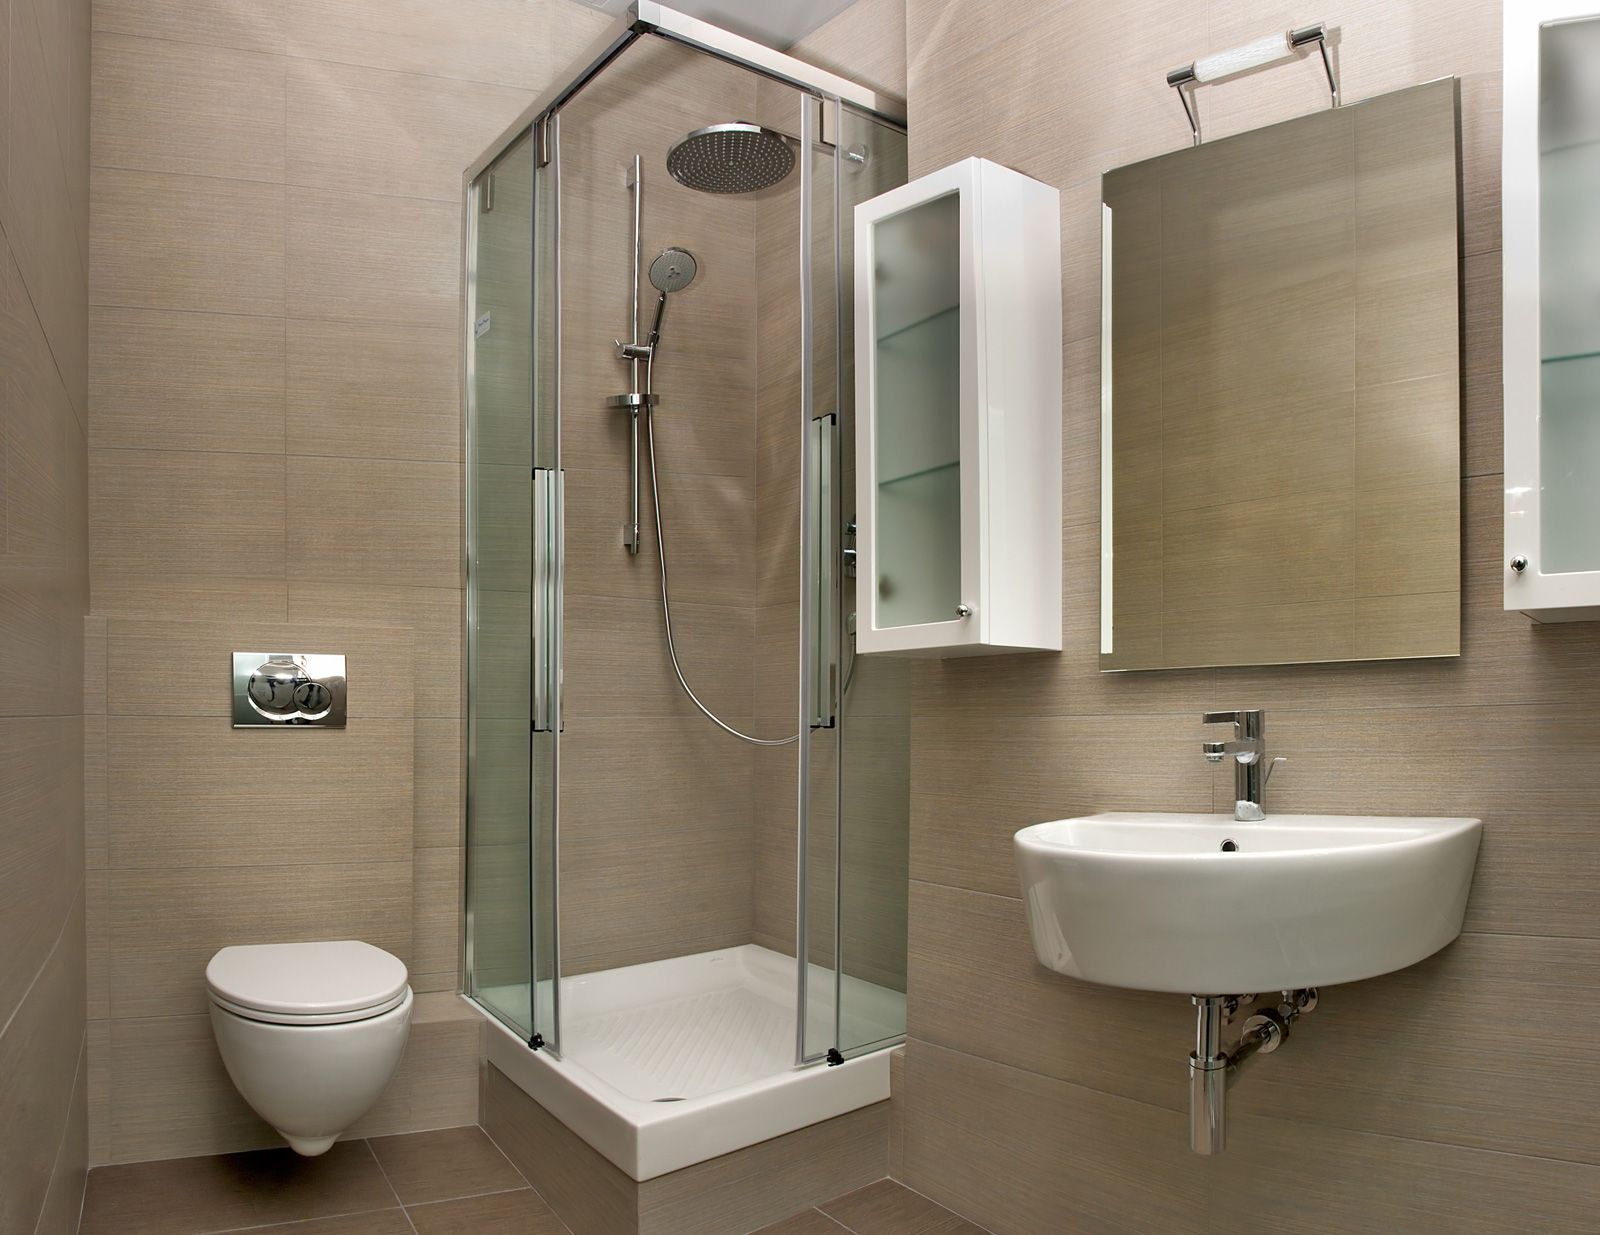 Shower Ideas For Small Bathroom To Inspire You On How To Decorate